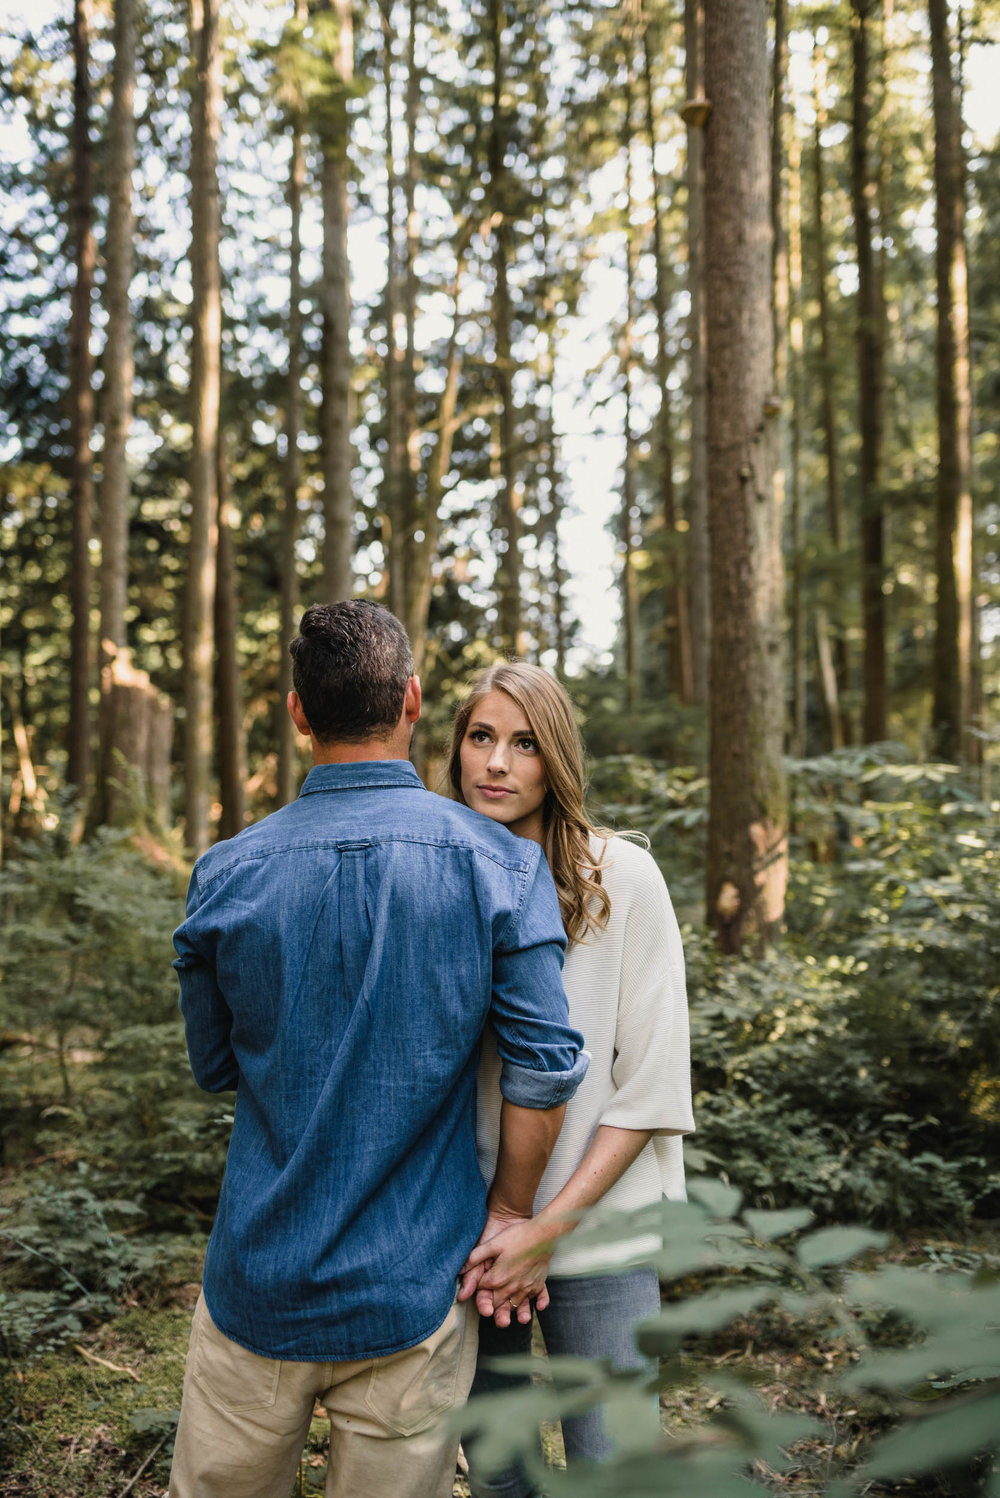 Couple embraces in foliage. Girl looks over guy's shoulder.